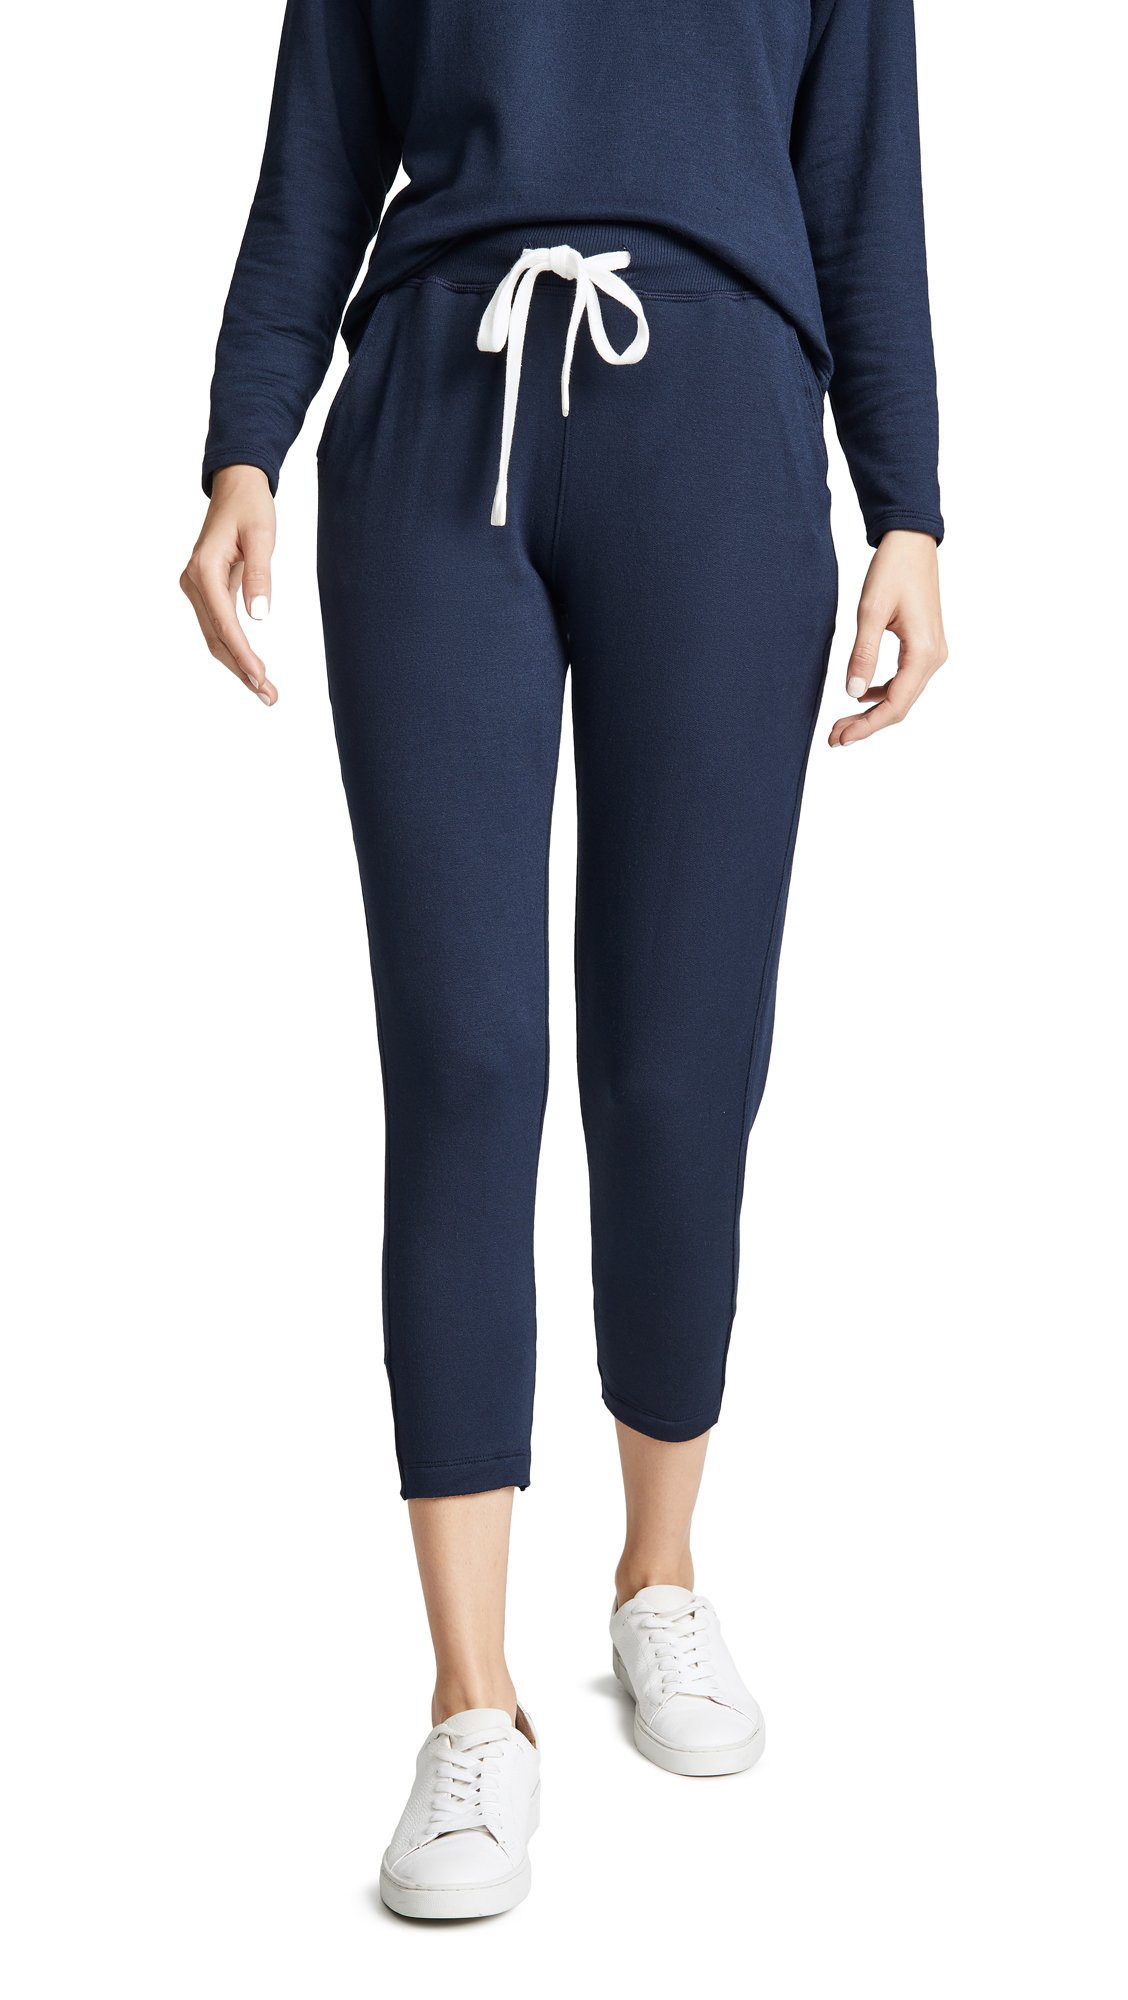 Splits59 Reena Sweatpants